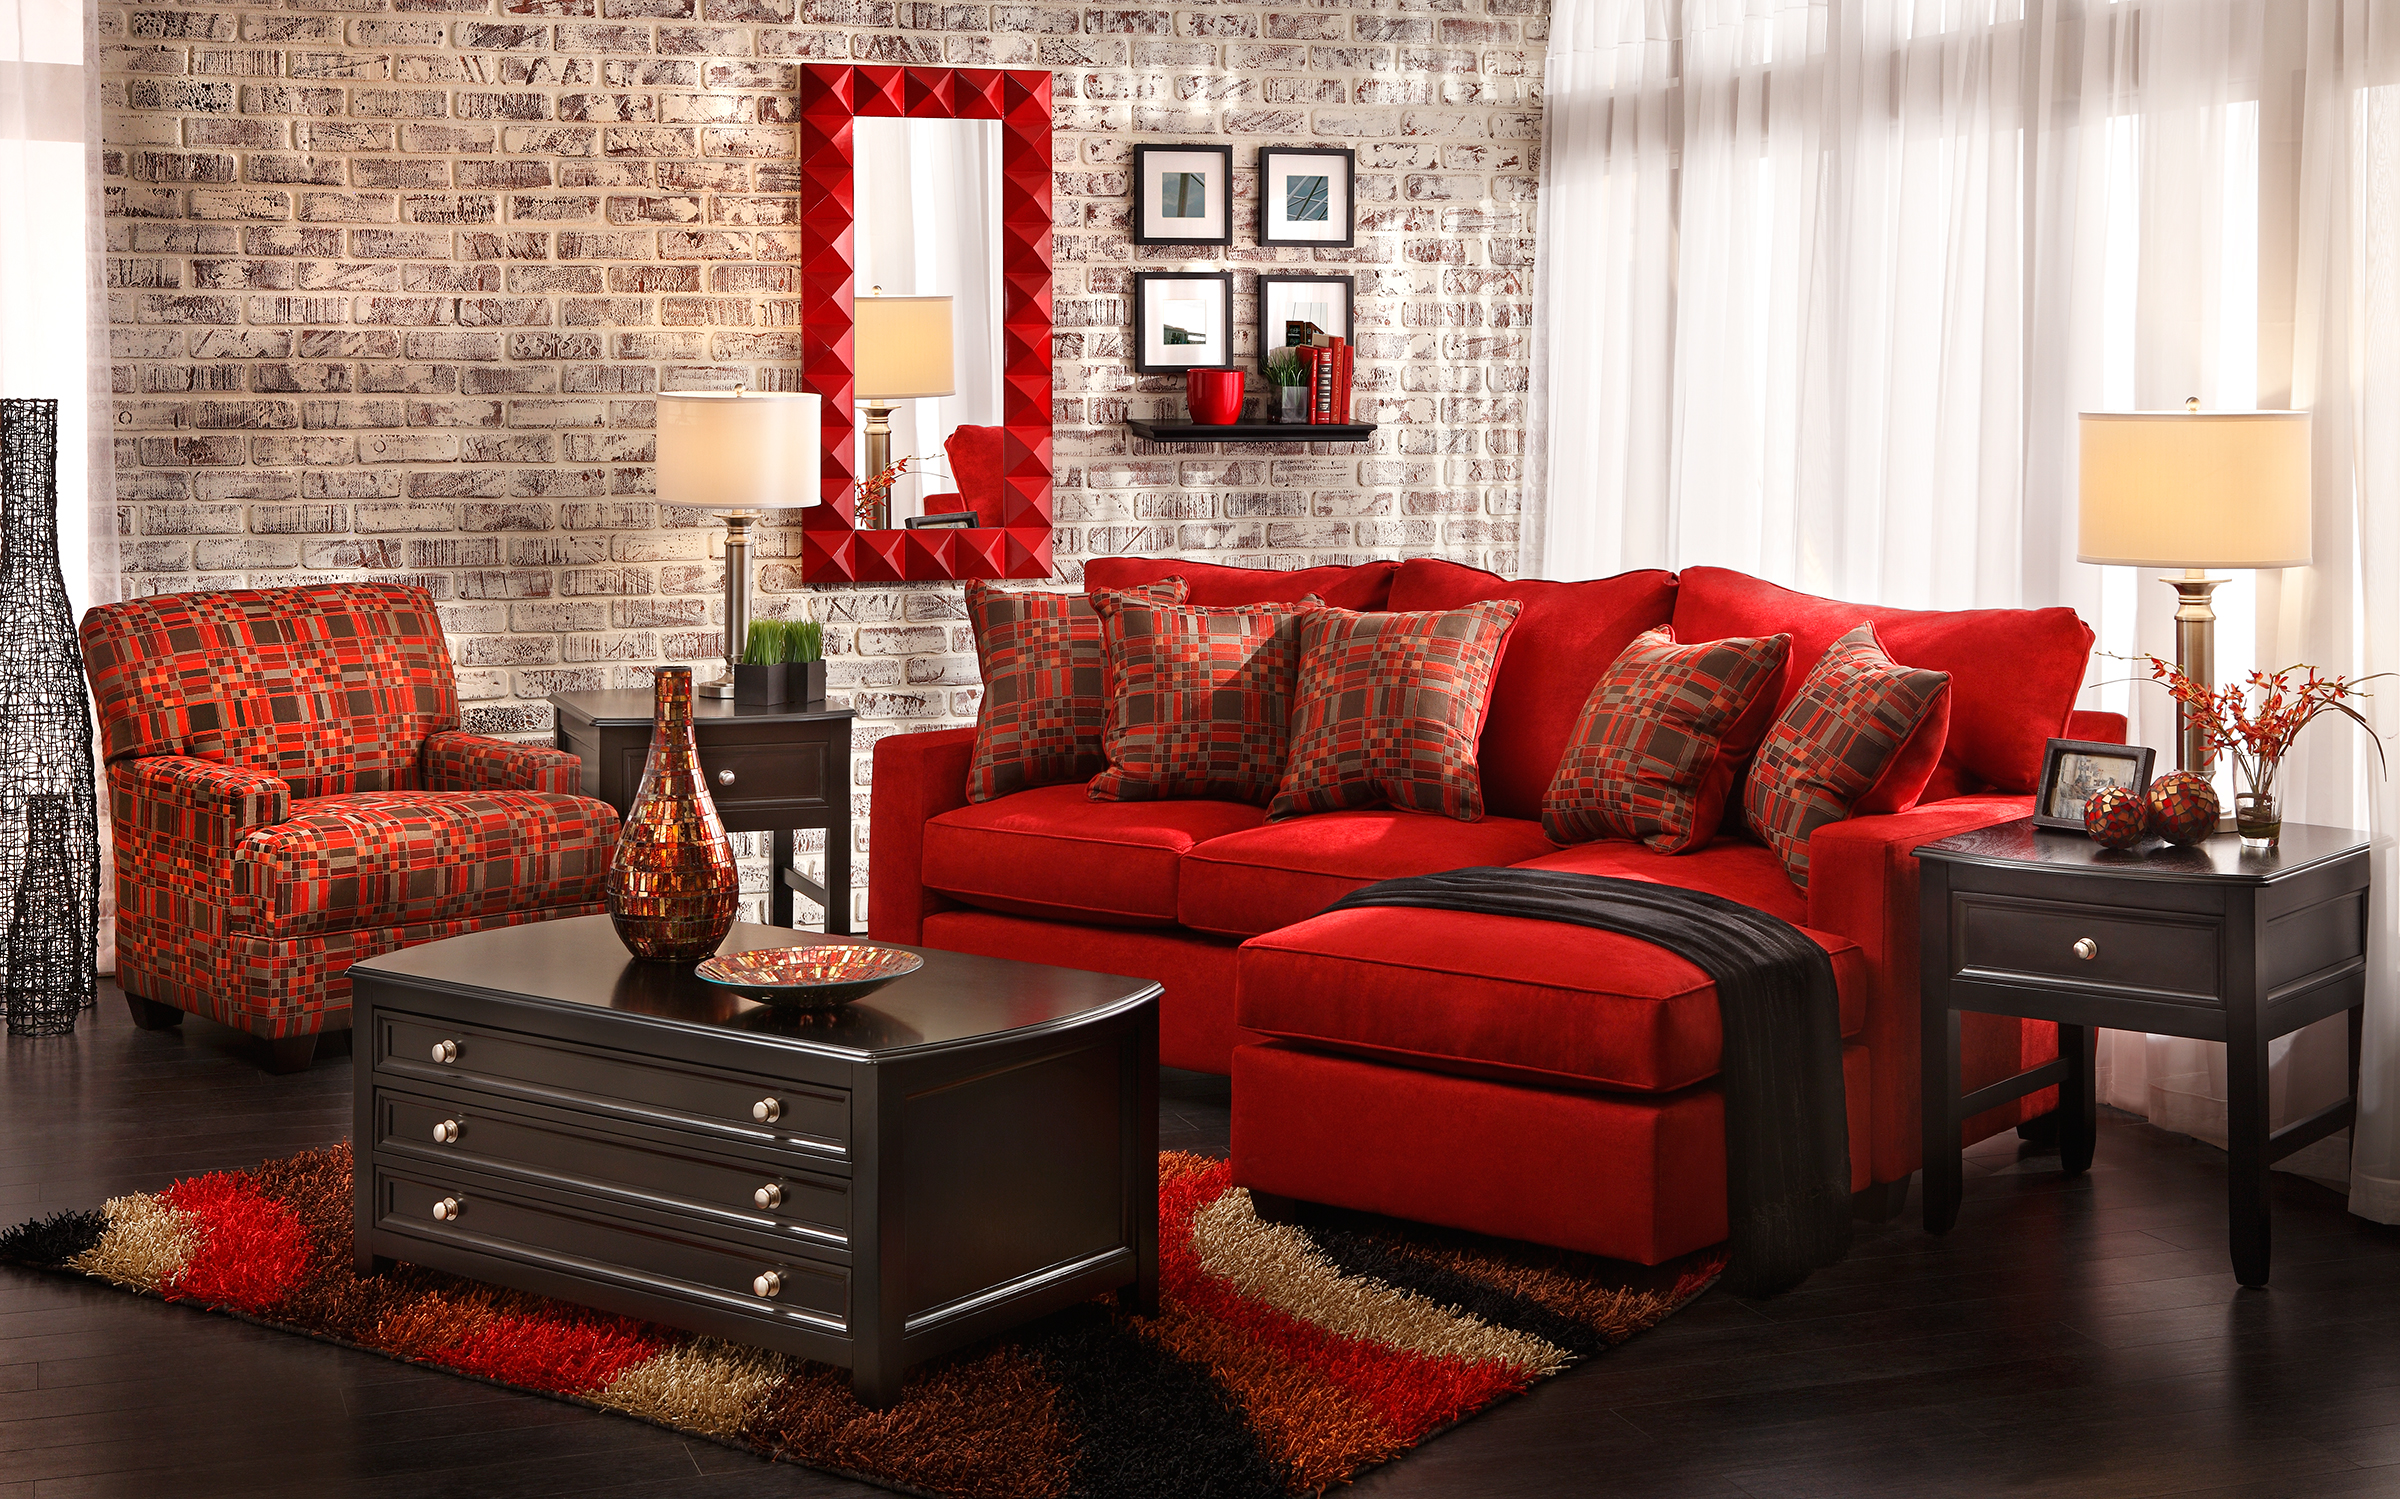 Furniture Row Sofas Furniture Row Sofa Mart Www